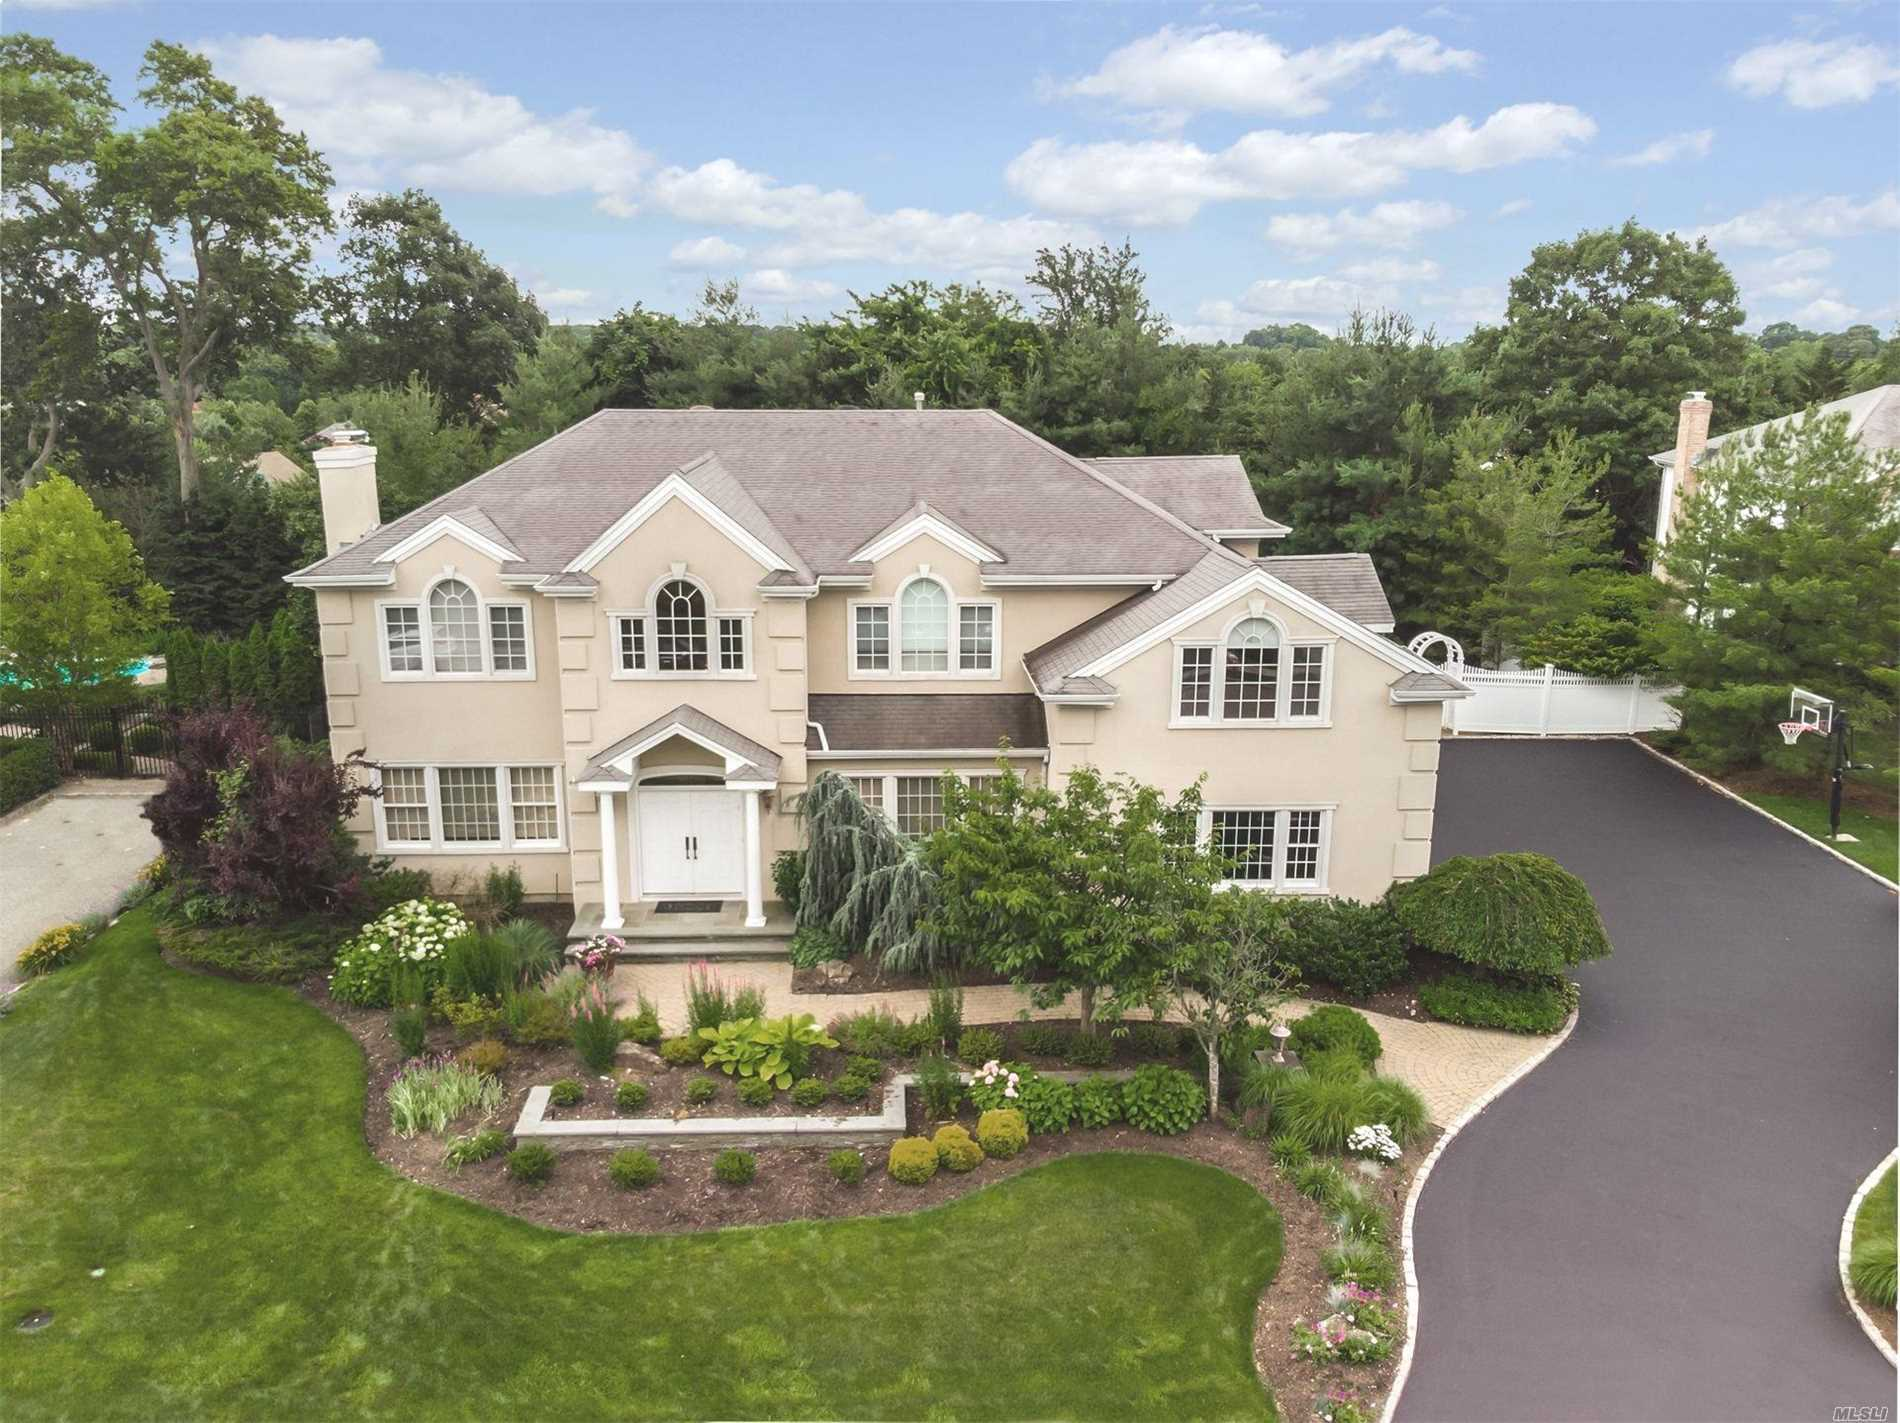 Stunning 5+Bed Hampton Inspired Stucco Colonial Built With The Finest Craftsmanship & Materials To Create A Home Of Sophisticated And Timeless Design.Dramatic 2Story Entry, Open Floor Plan, Wide Hardwood Plank Flooring Throughout.Professional High-End Chef's Kitchen With Custom Butlers Pantry, Banquet Dr, Oversized Gas Fplce In Lr, Mahogany Entertainment Built-In, Marble Spa Baths, Heated In-Ground Gunite Pool With Rock Waterfall Surrounded By Lush Landscaping. High Ceilings On All Floors, 3 Car Garage.